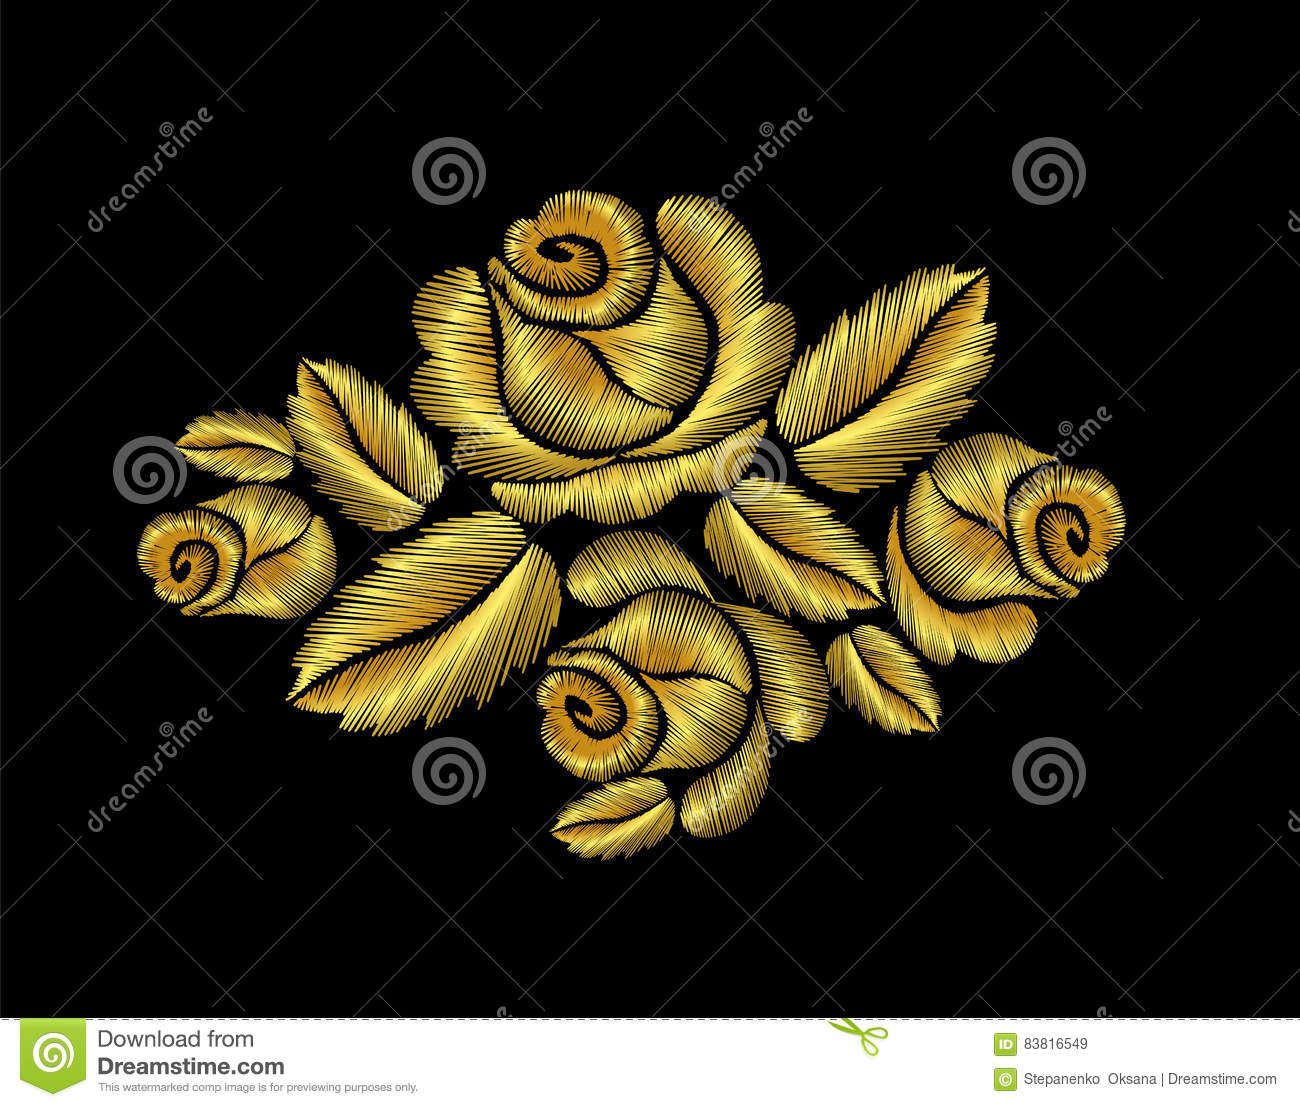 Golden roses embroidery fashion hand drawn illustration